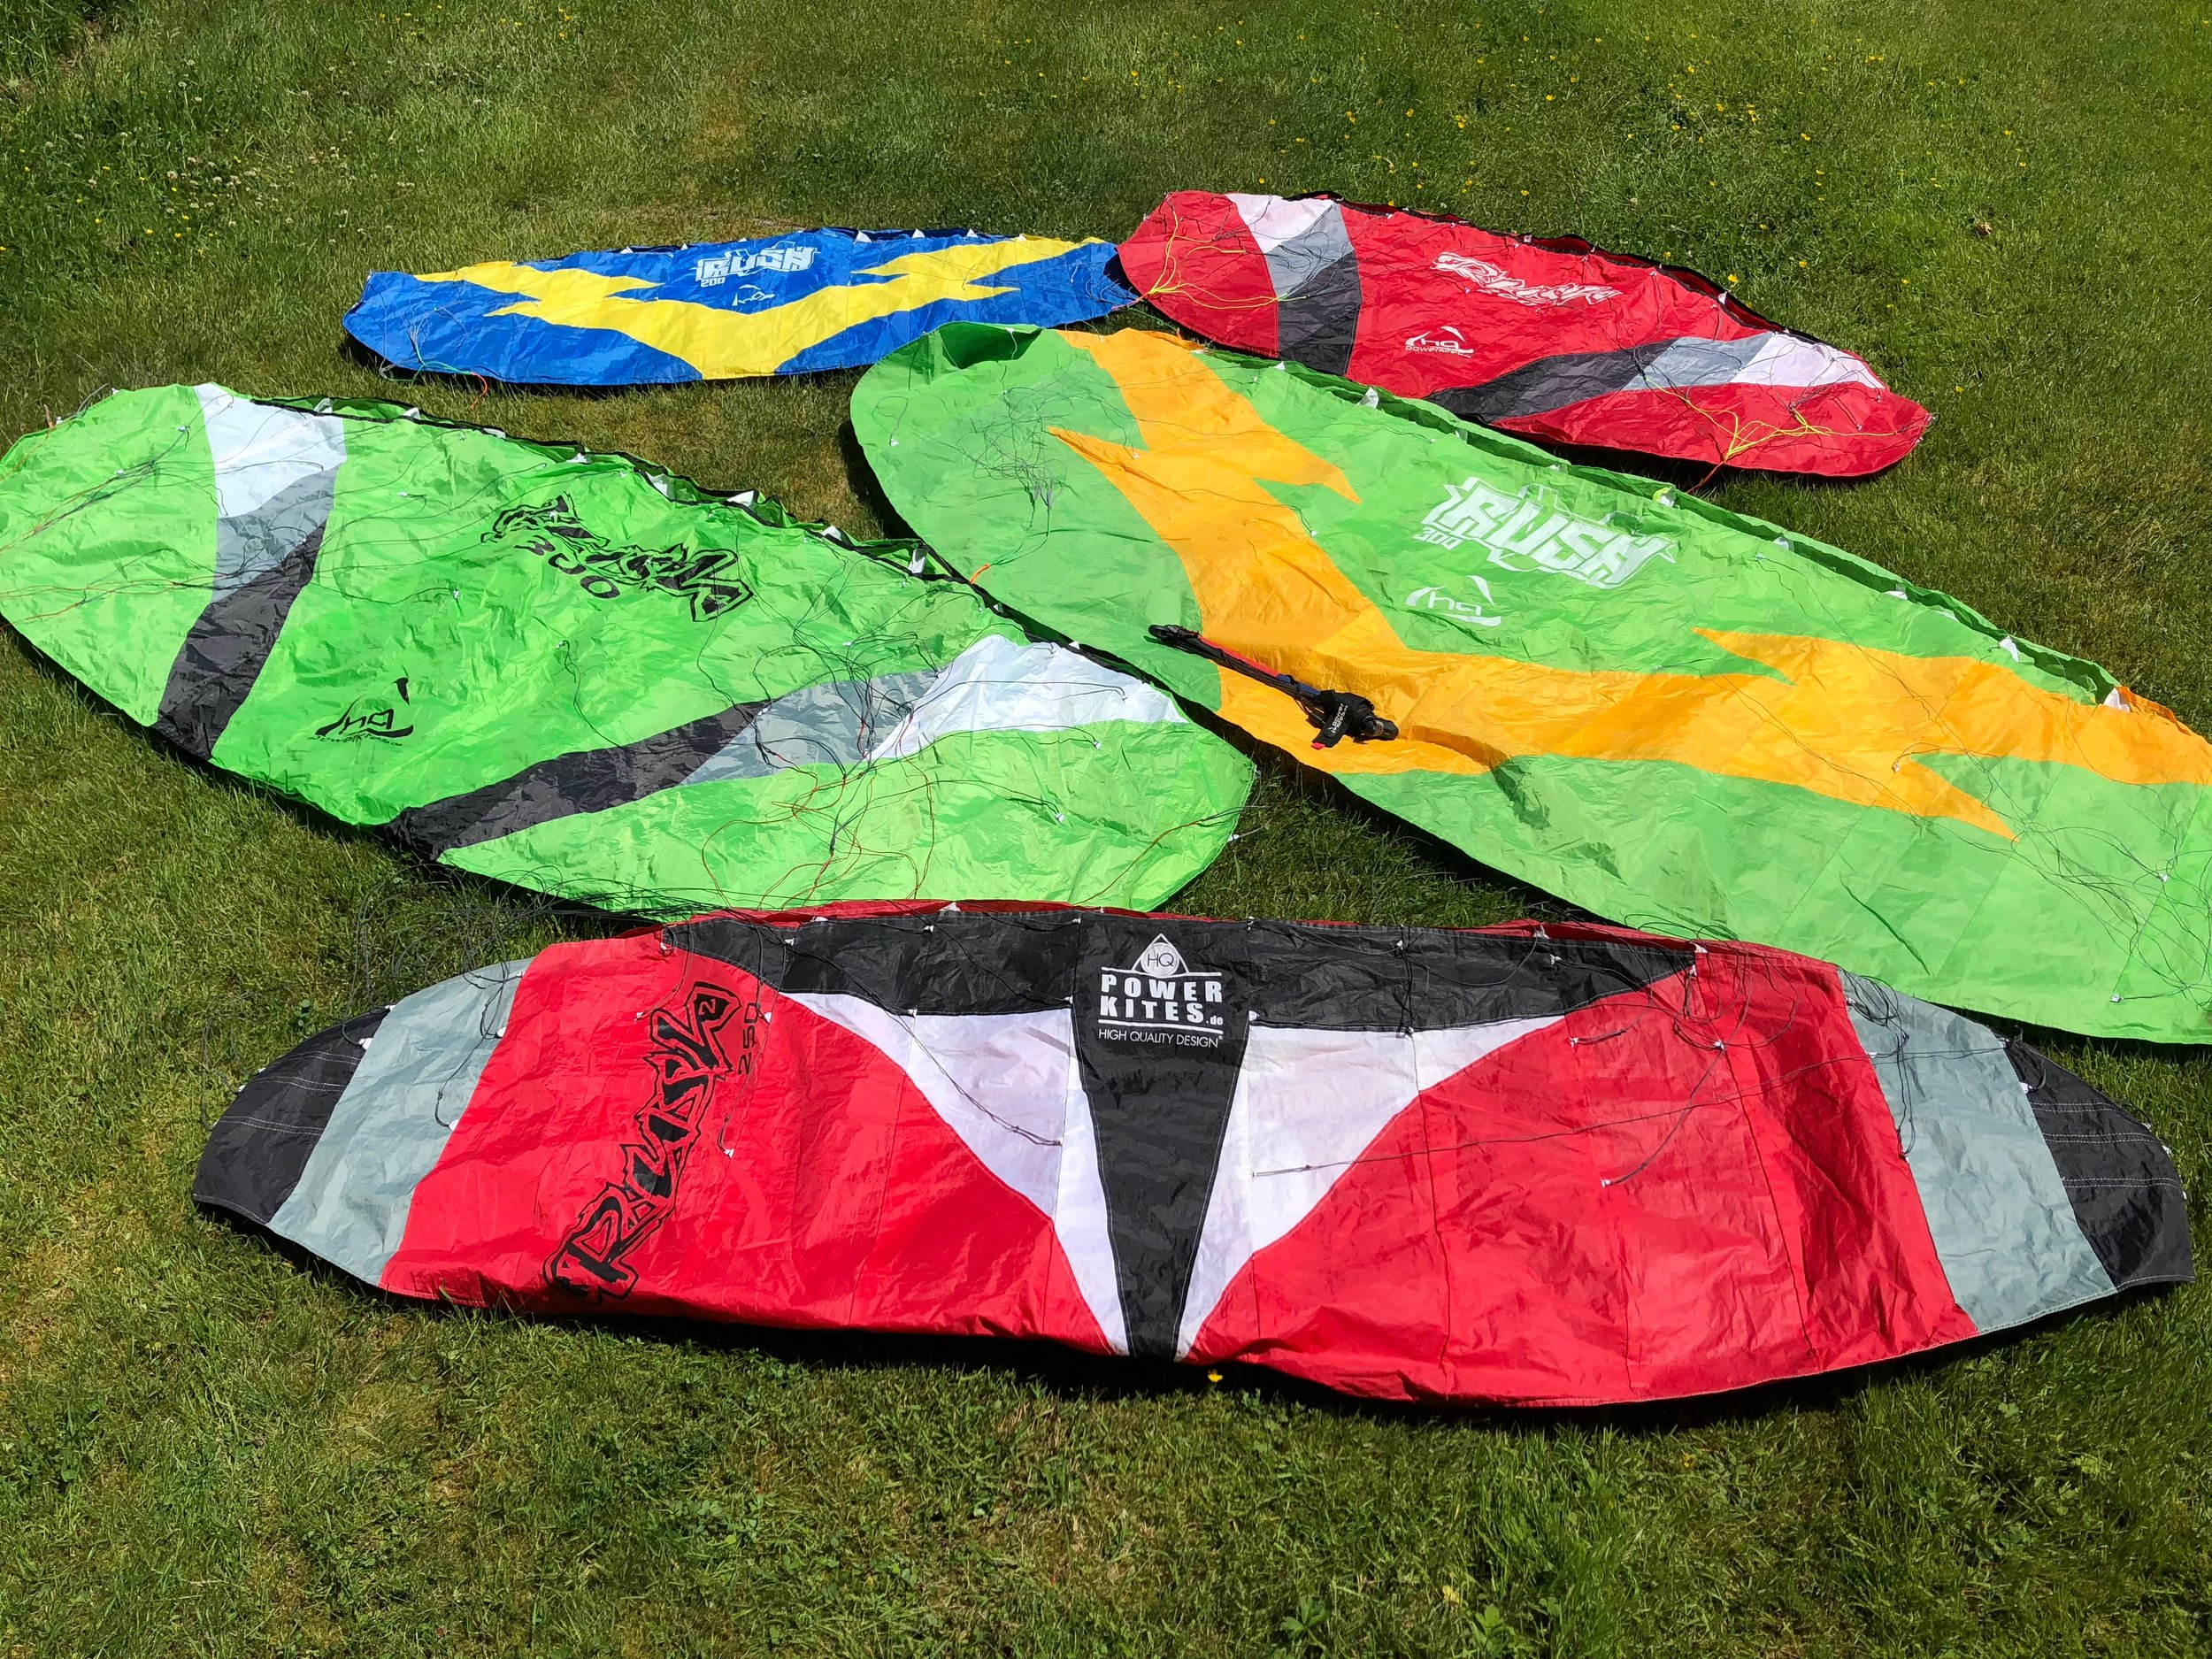 Used Land Based Training Kites - Retired with some repairs, most come with new bar and lines2m - $852.5m - $953m - $110